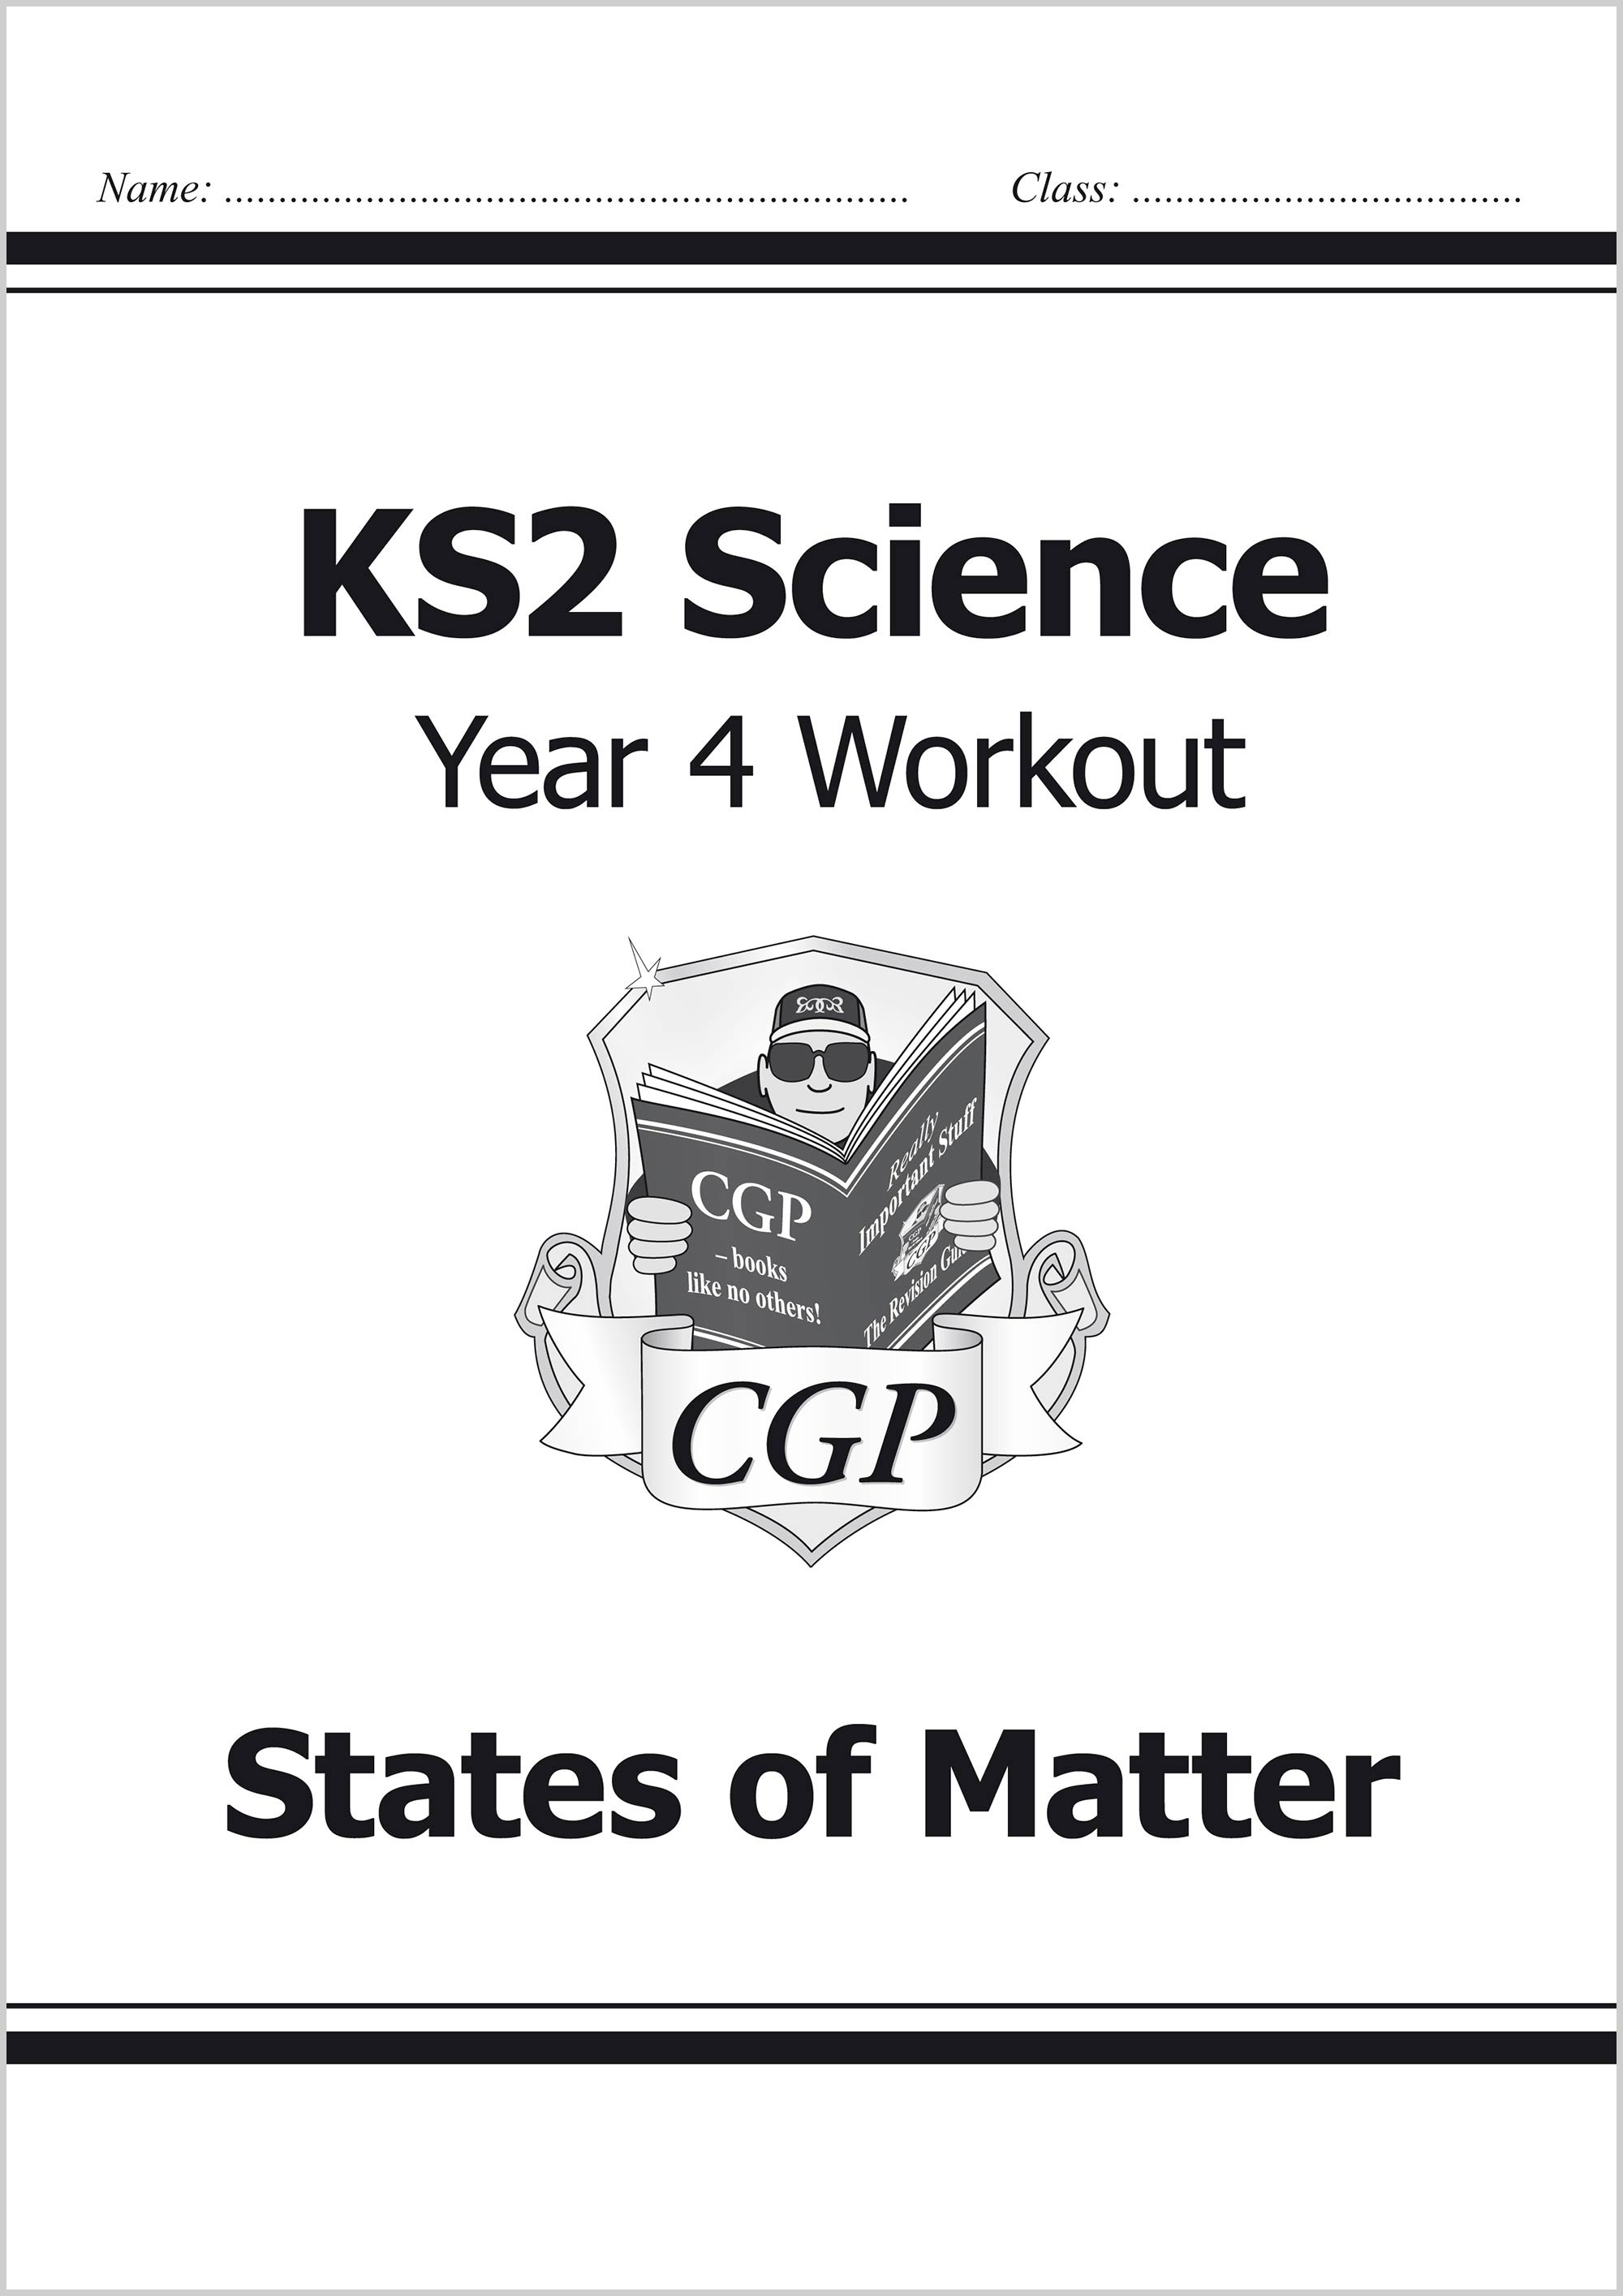 S4C22 - KS2 Science Year Four Workout: States of Matter